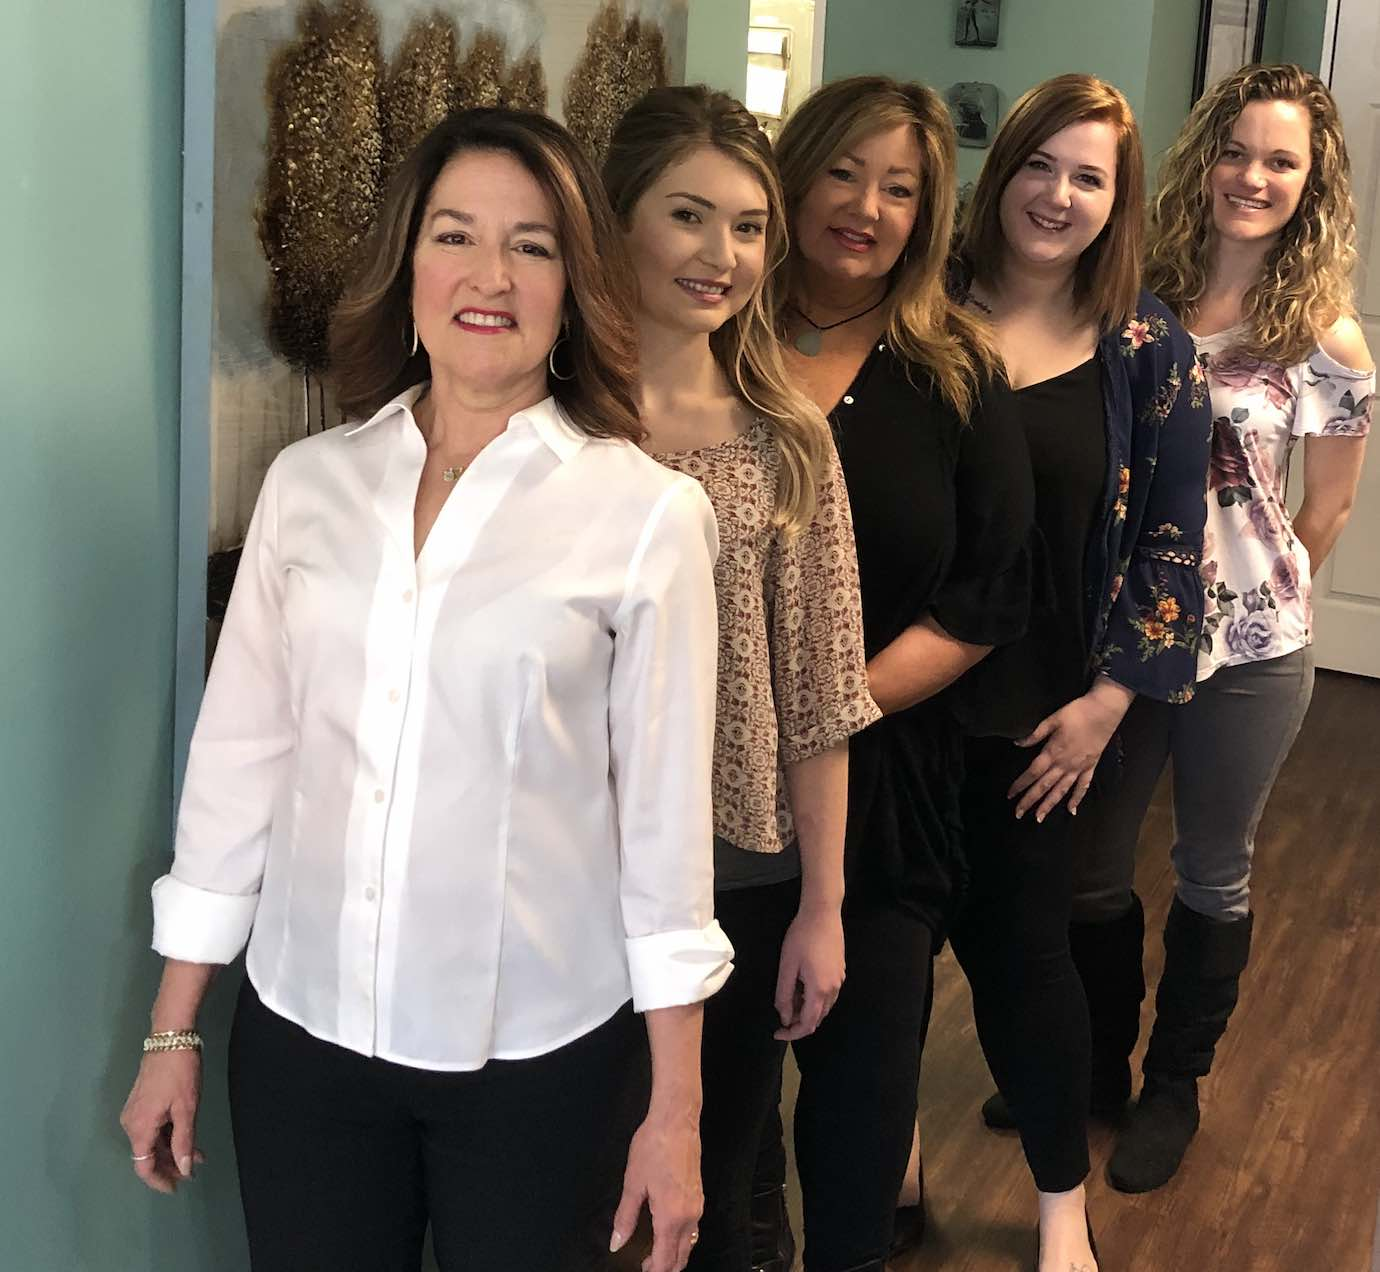 beauty and hair salon in Monroe, CT – our staff